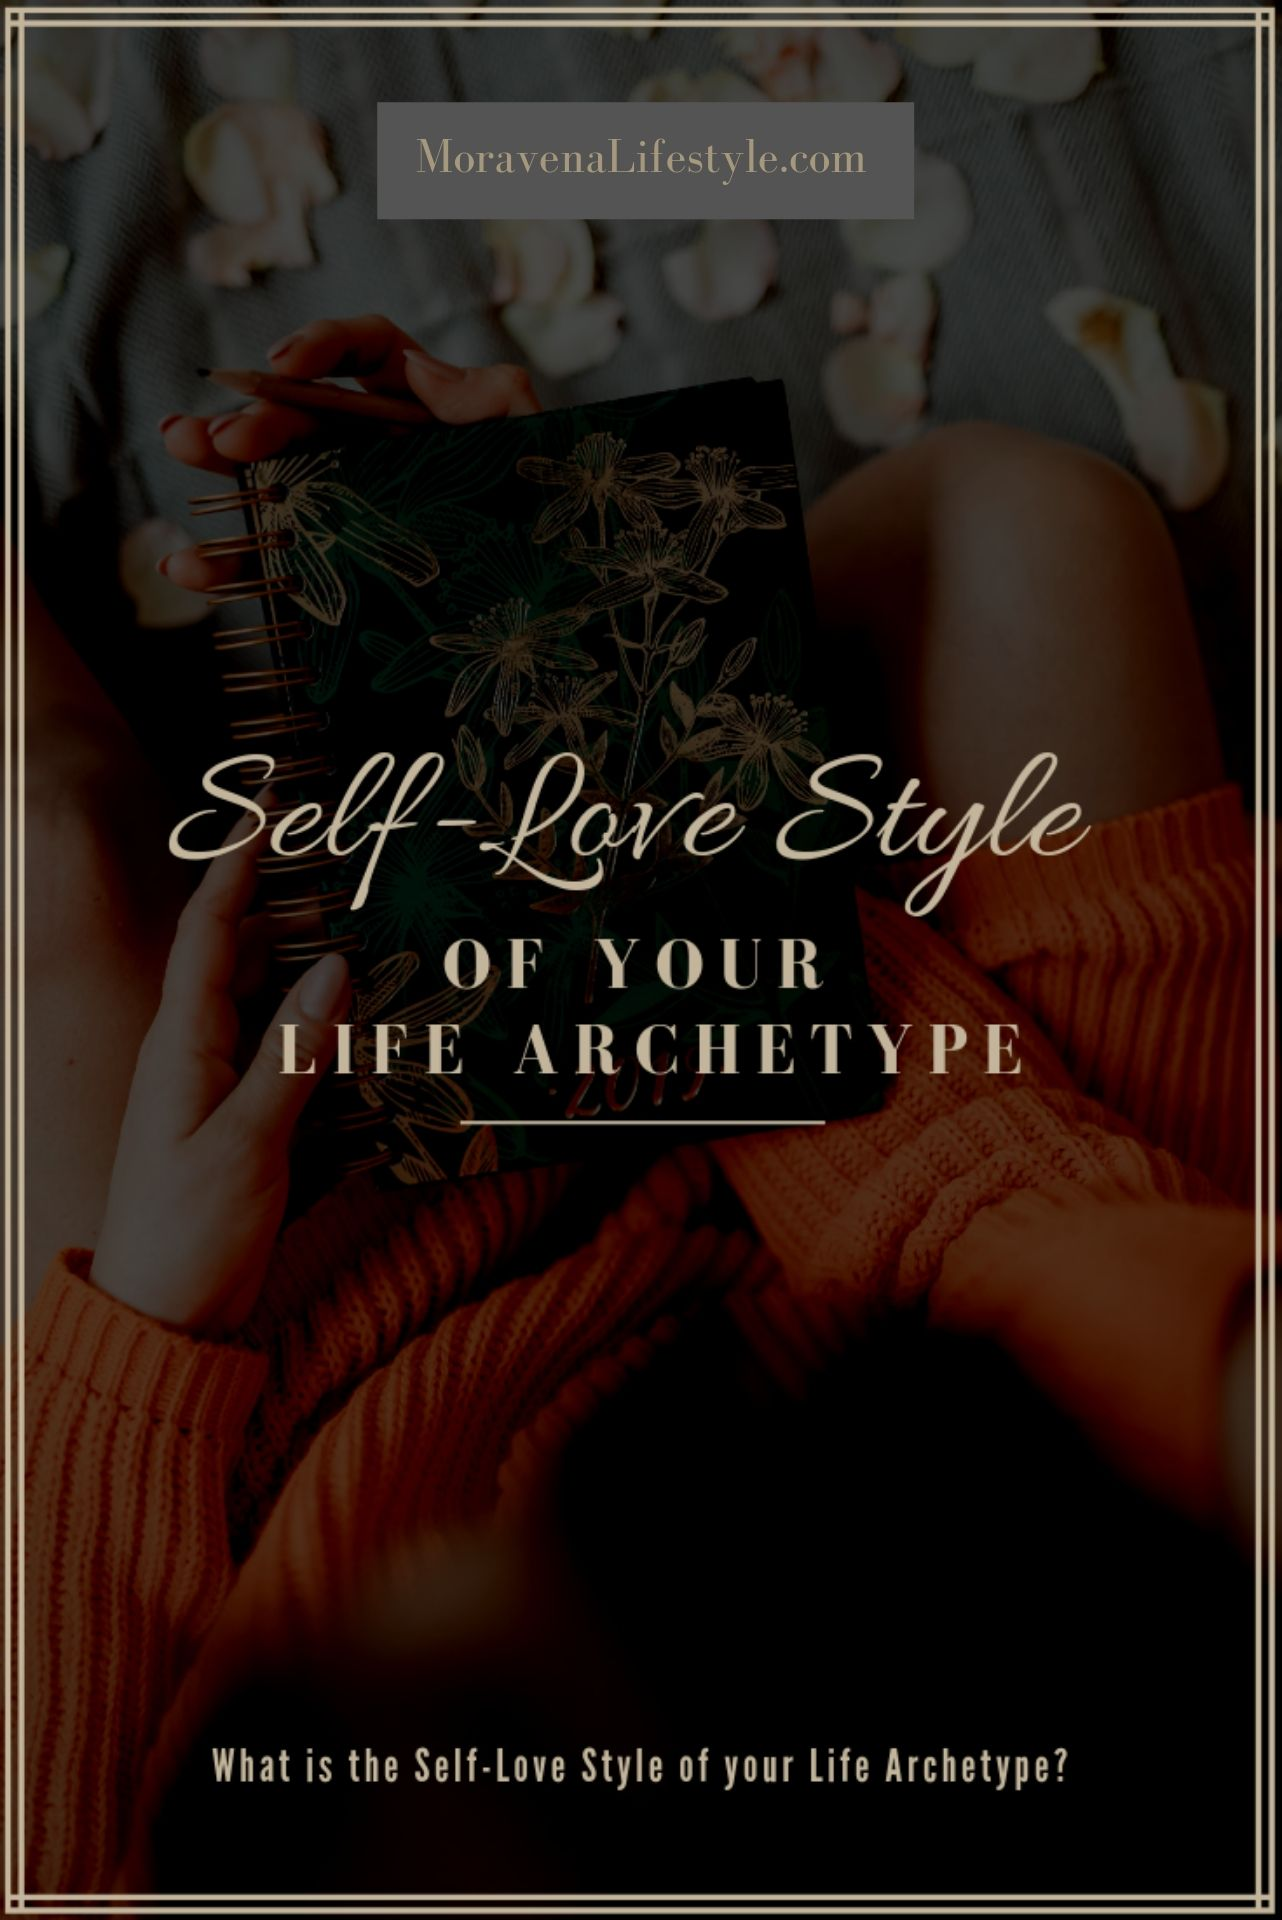 Self-Love Style of Your Life Archetype